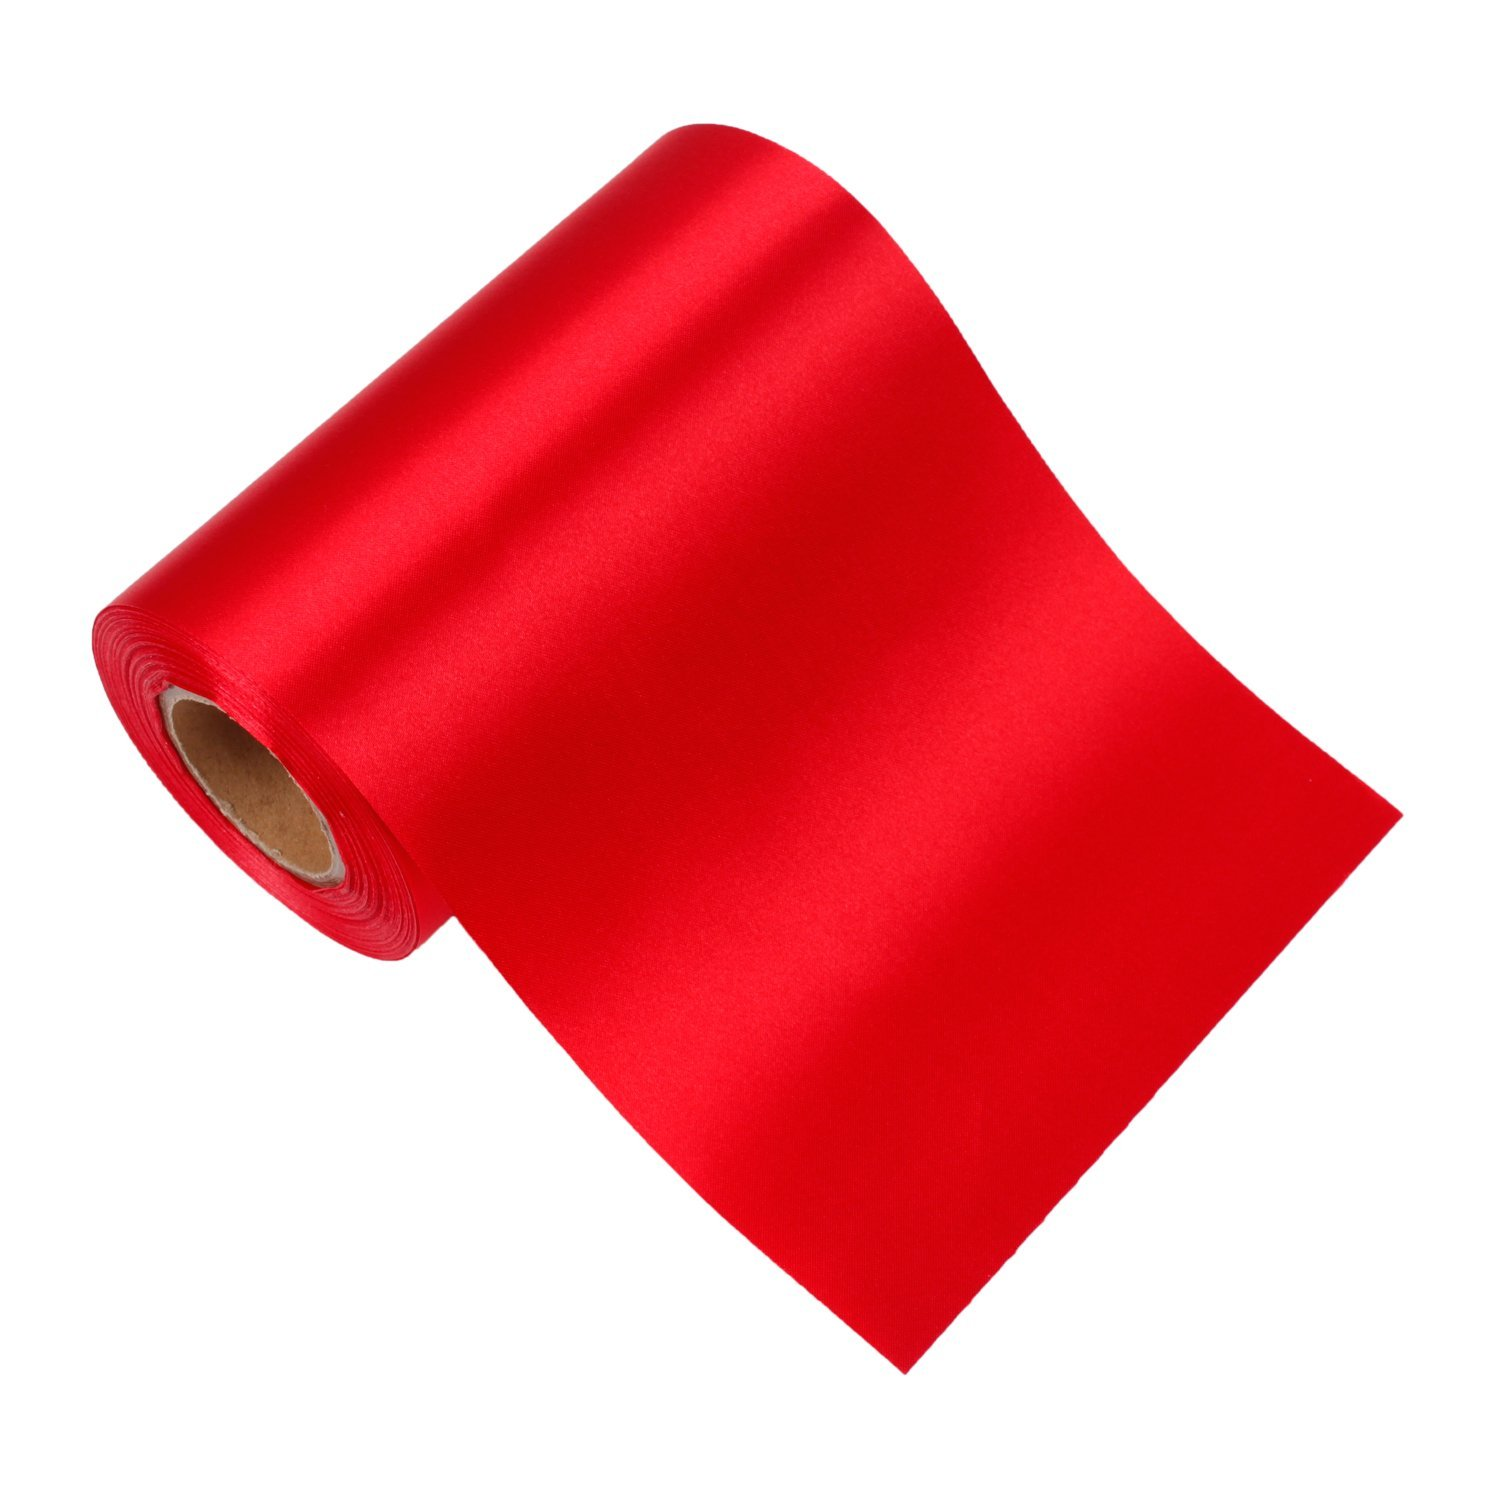 LaRibbons 6 inch Wide Grand Opening Ceremony Satin Ribbon, Wedding Party Decoration Craft Ribbon, Also for Making Car Bows - 25 Yard/spool (Red)